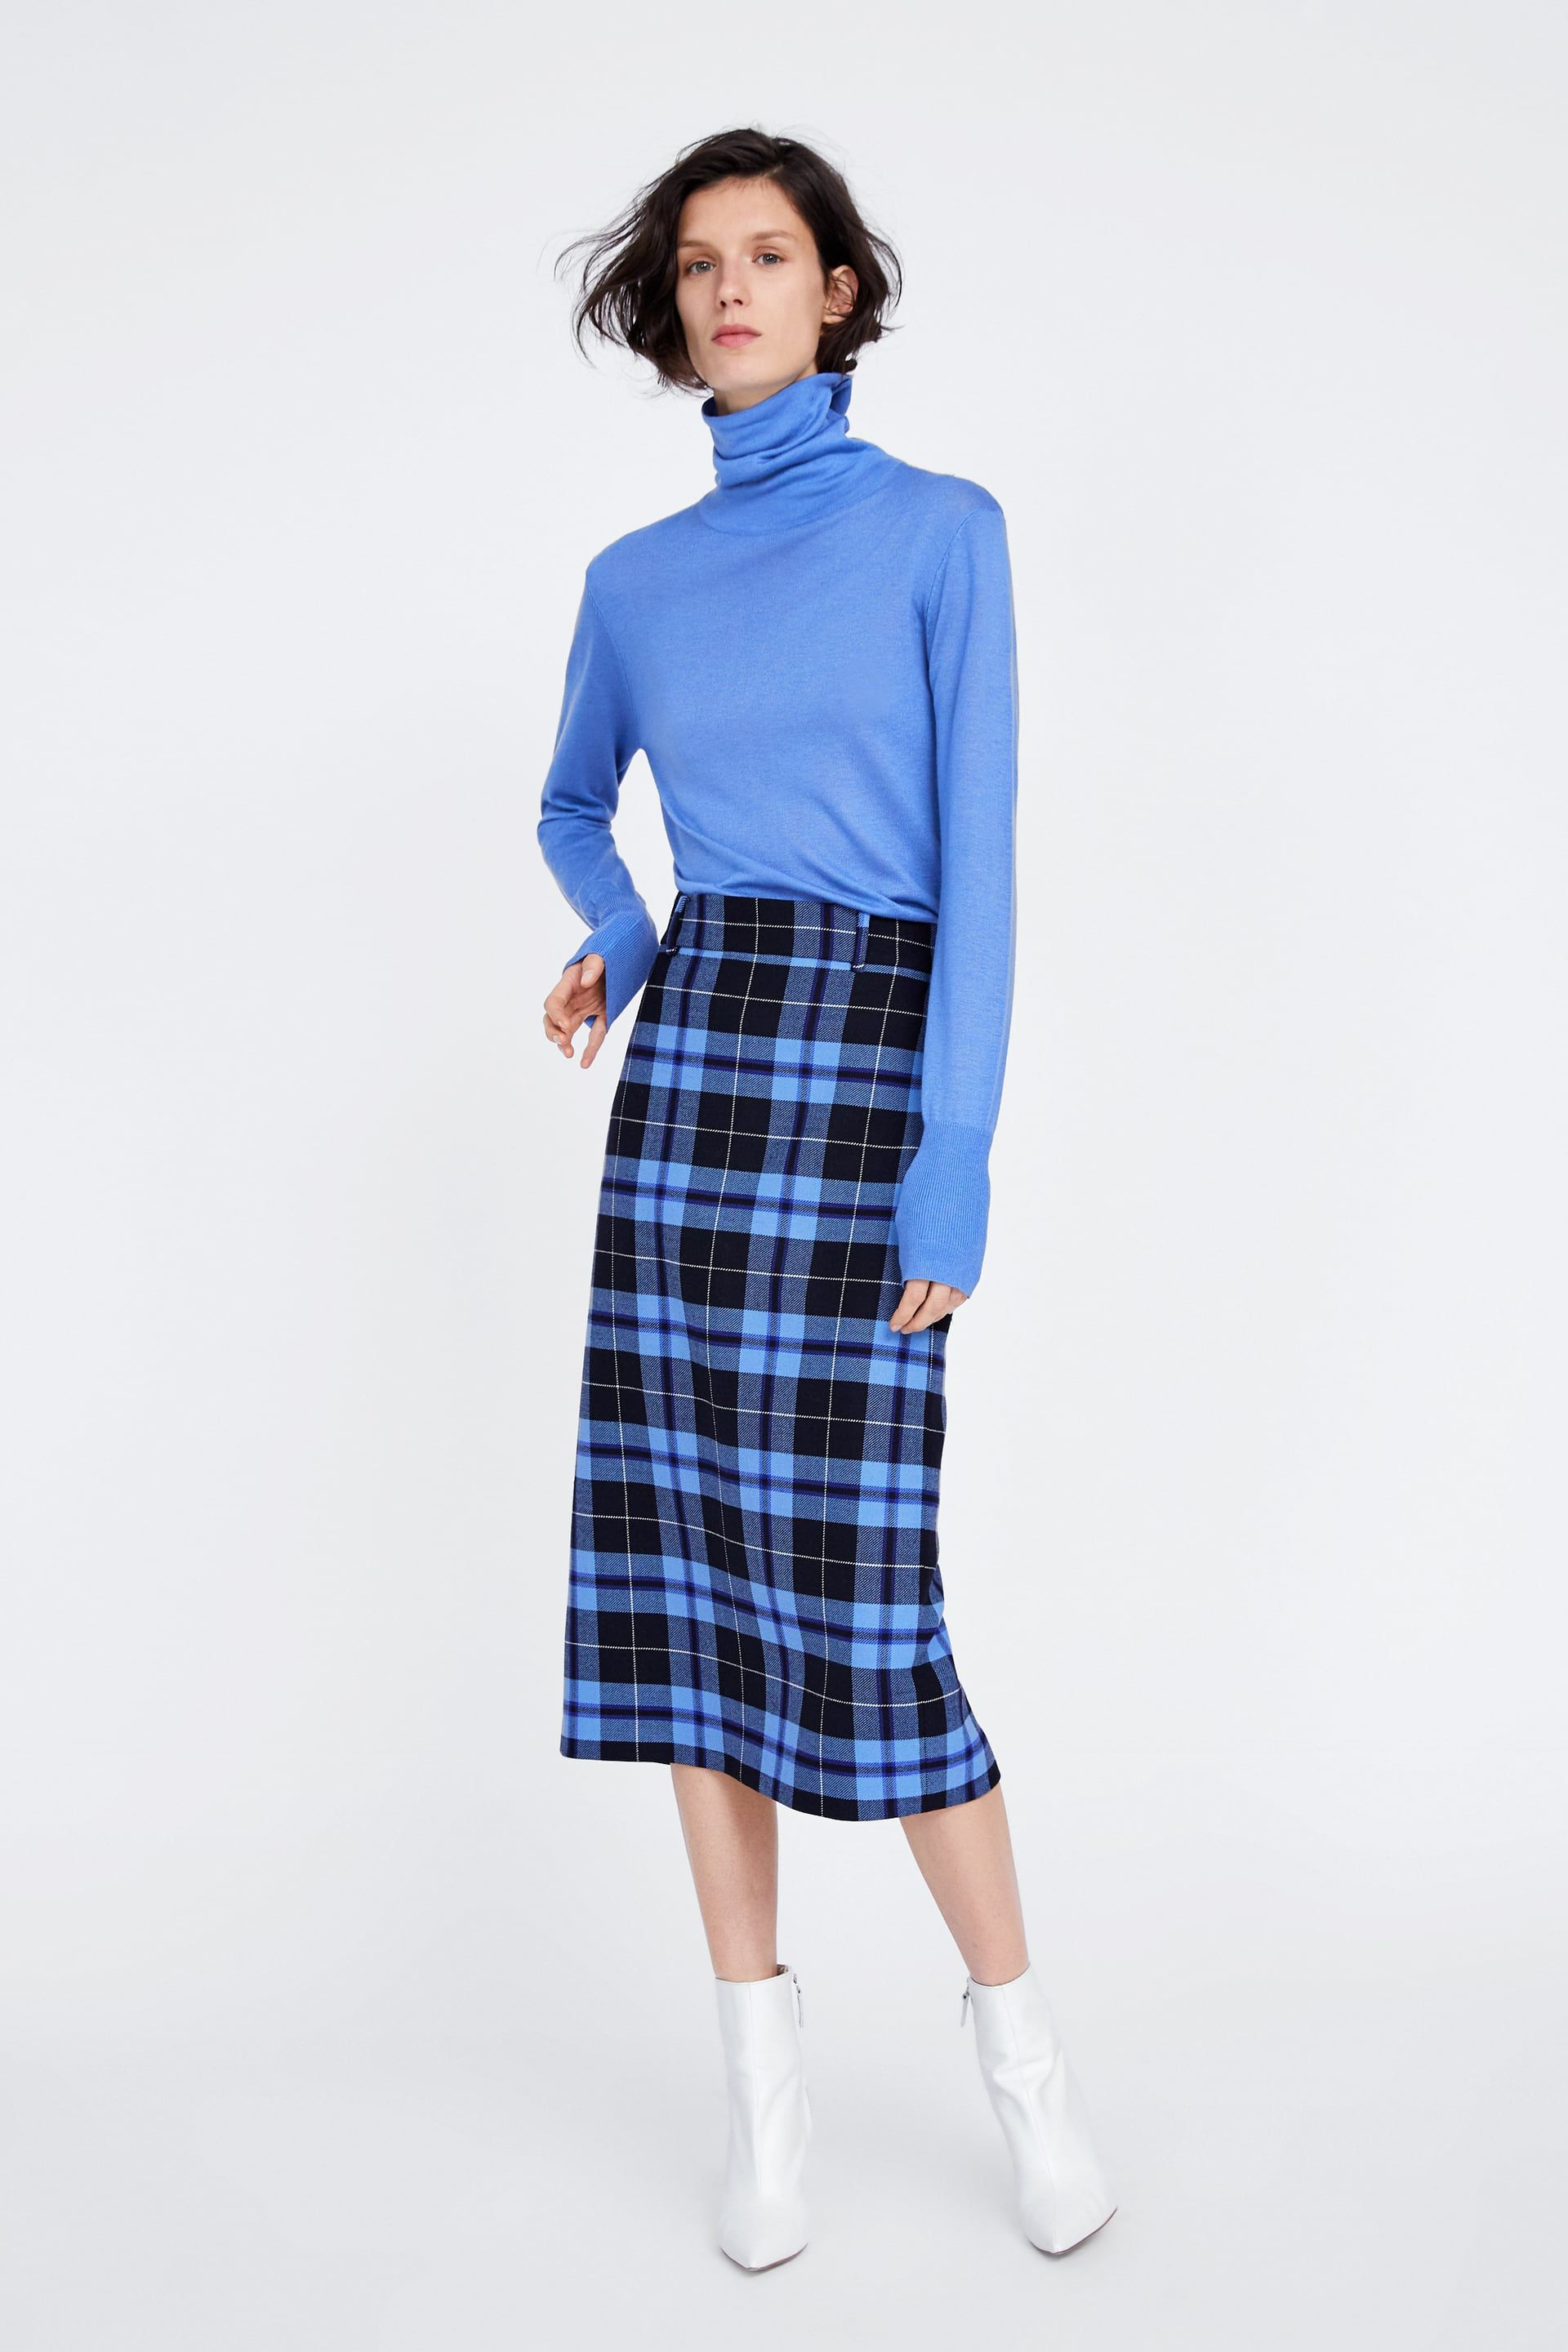 d1b9b32c5e Image 1 of CHECK PENCIL SKIRT from Zara | Zara fashion in 2019 ...